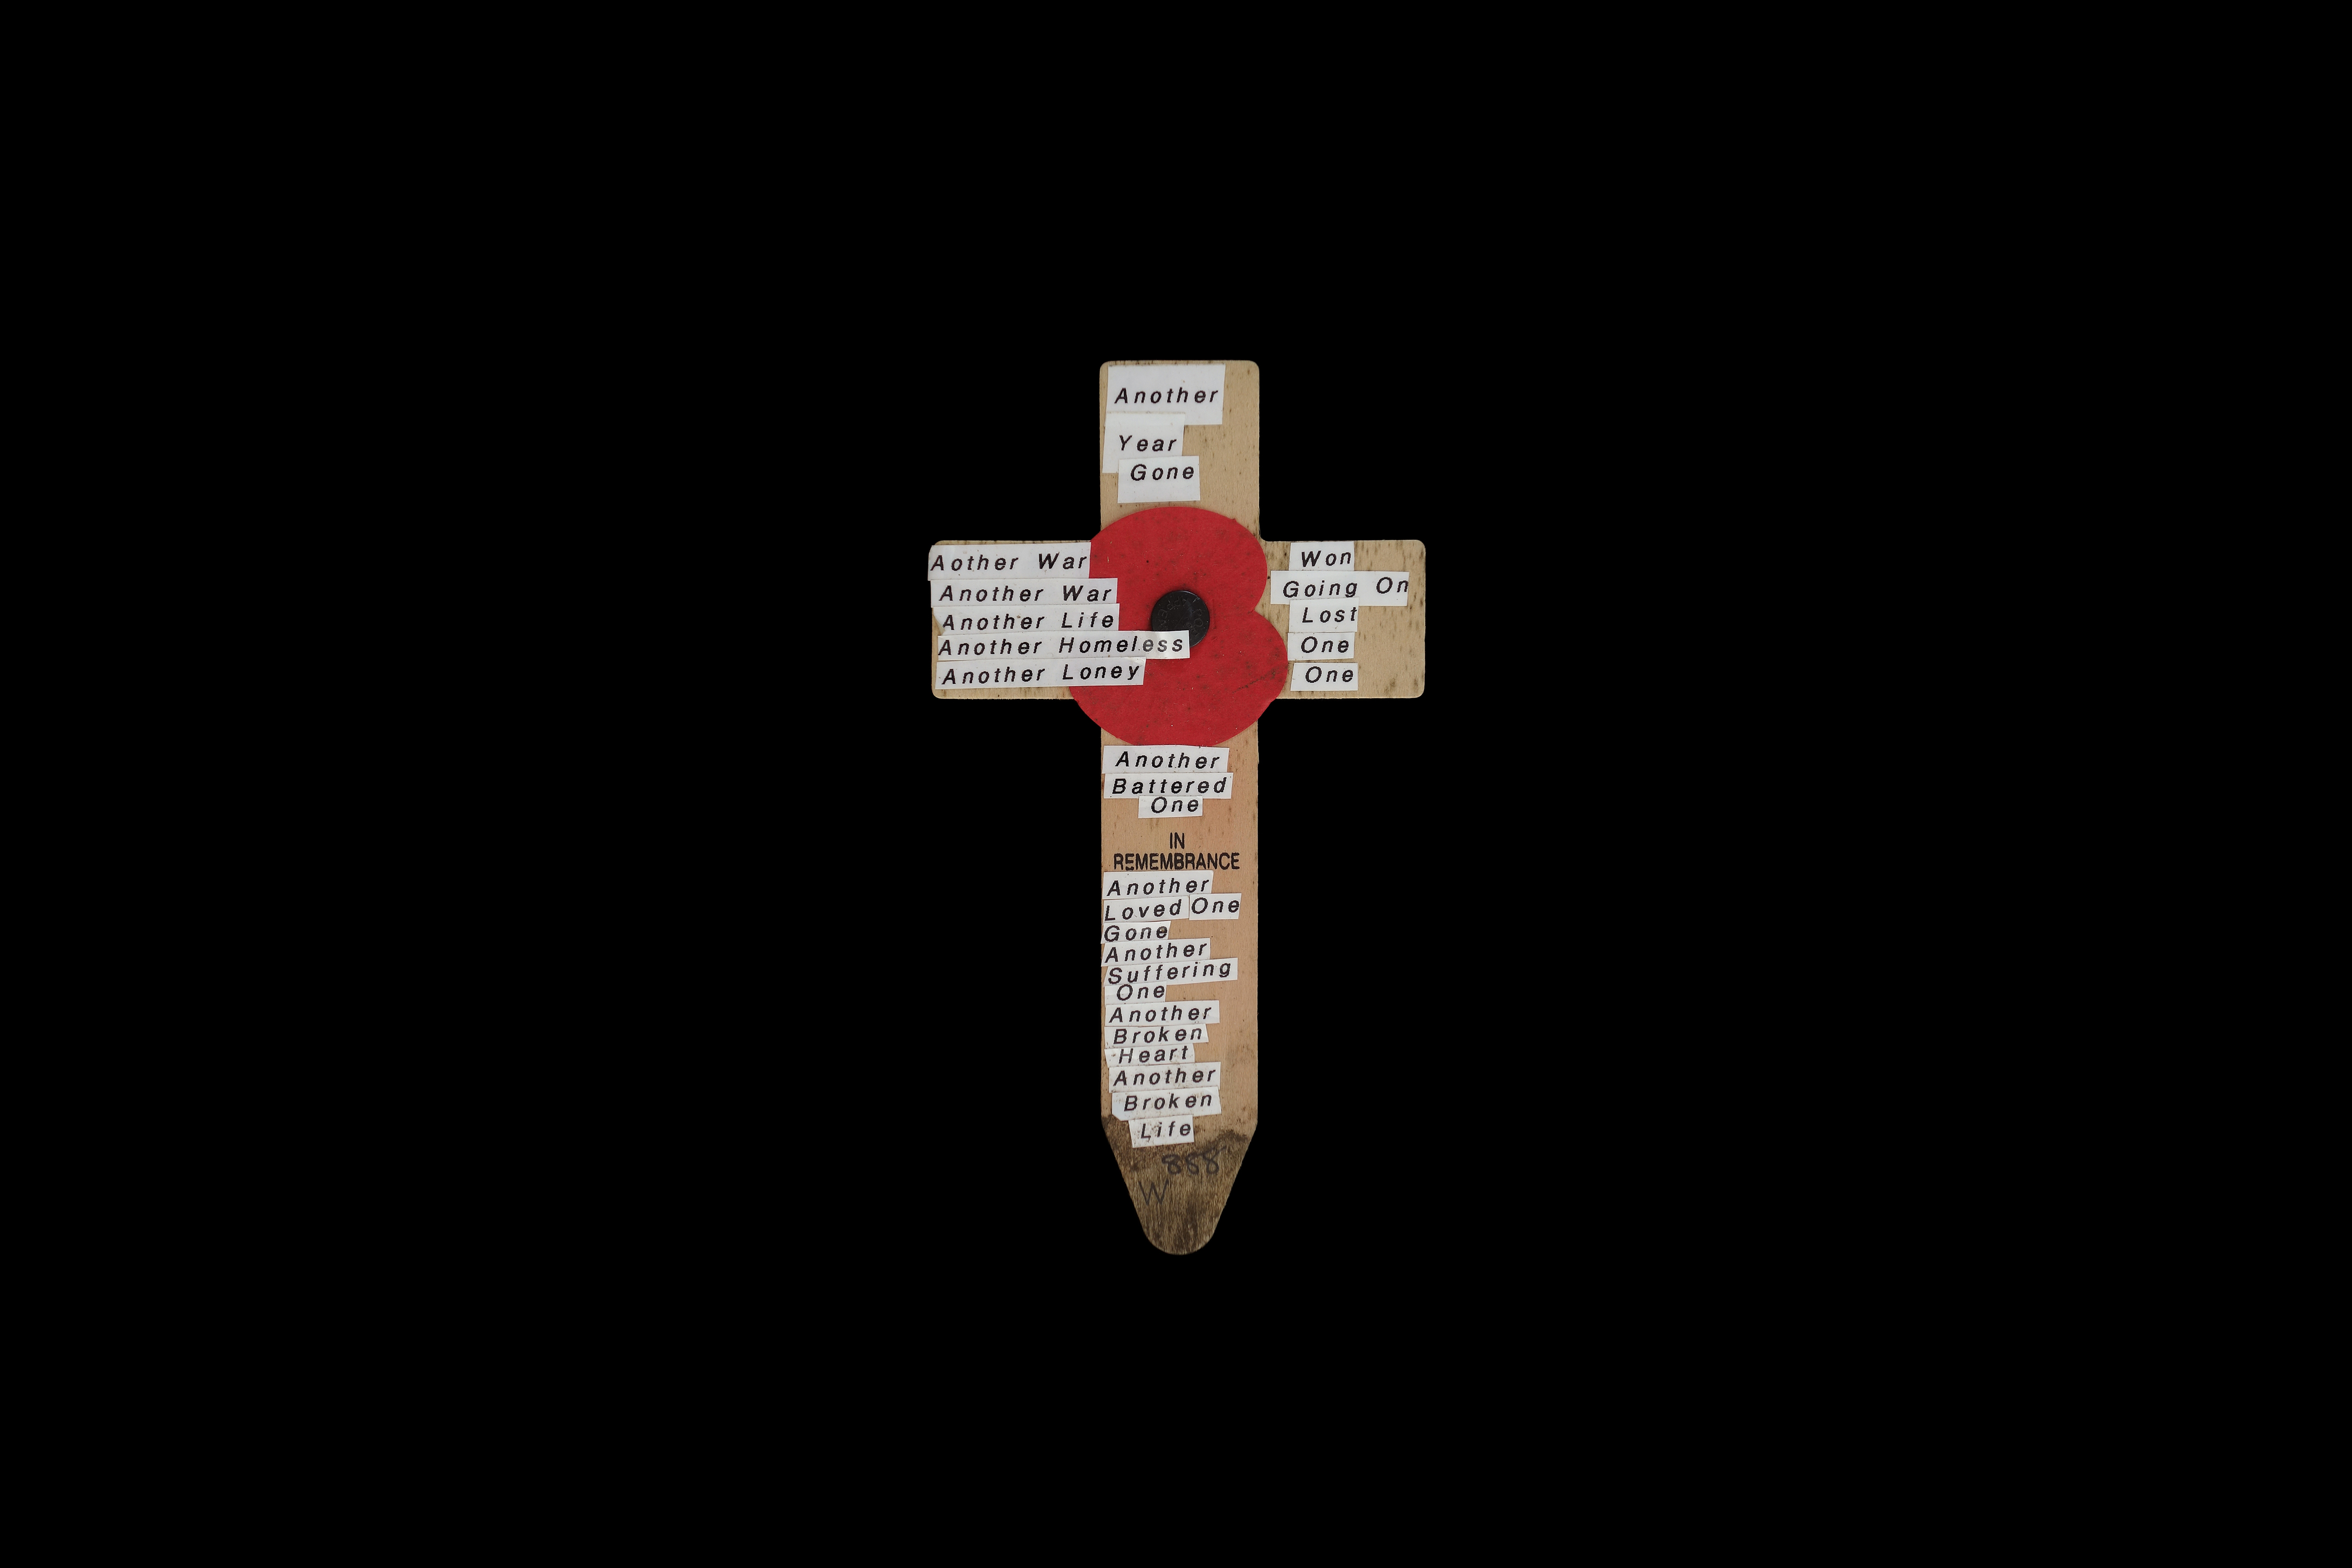 Remembrance cross #28